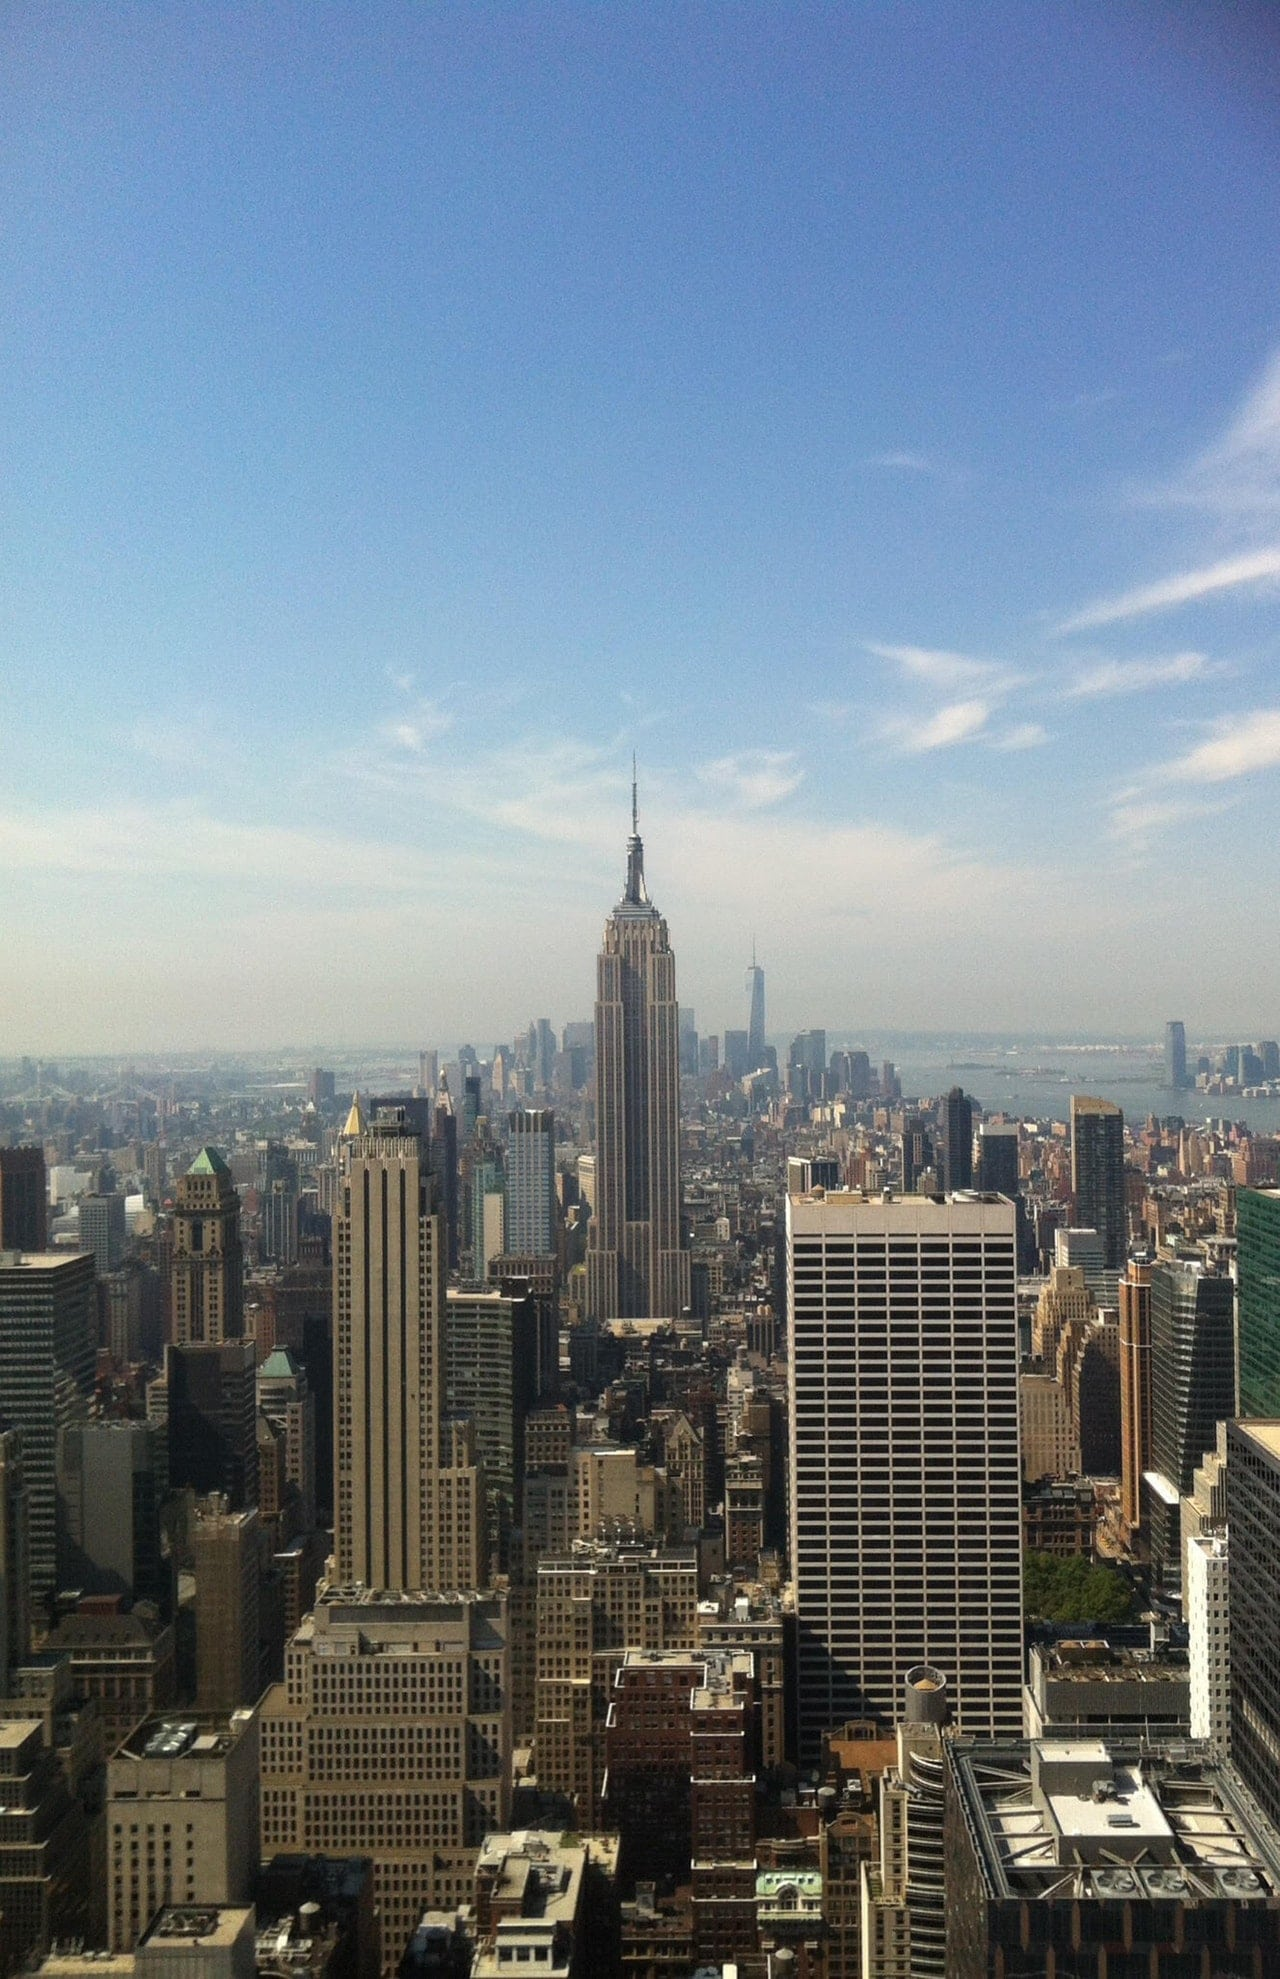 13 Best Things To Do in New York - Top tips for seeing New York Sights